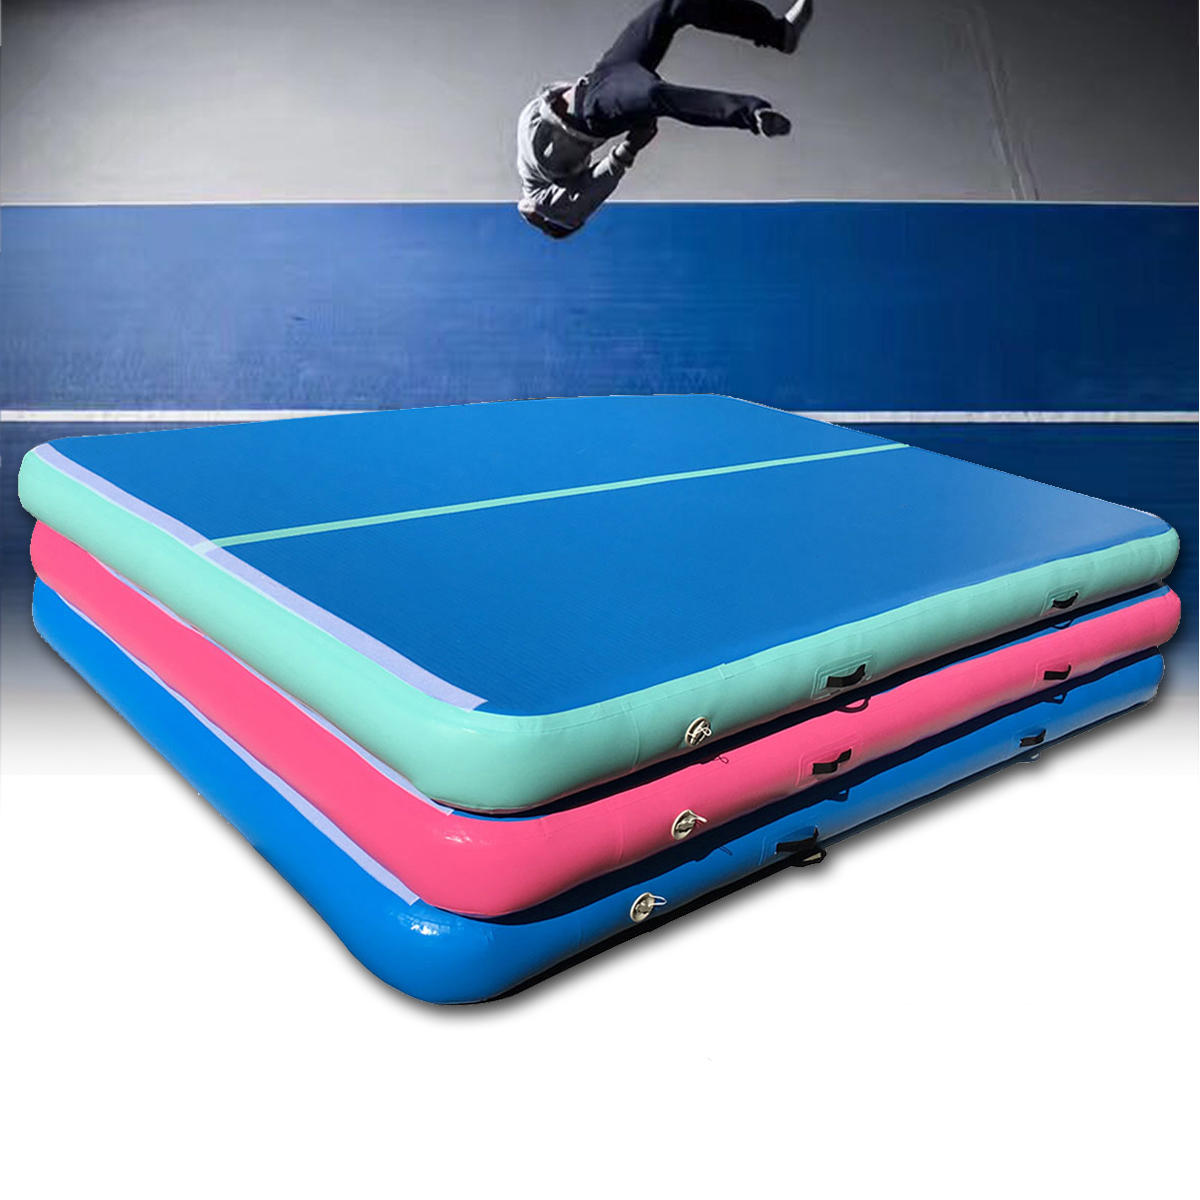 118x78x7.8inch Inflatable GYM Air Track Mat Airtrack Gymnastics Mat Tumbling Practice Training Pad With Repair Kit